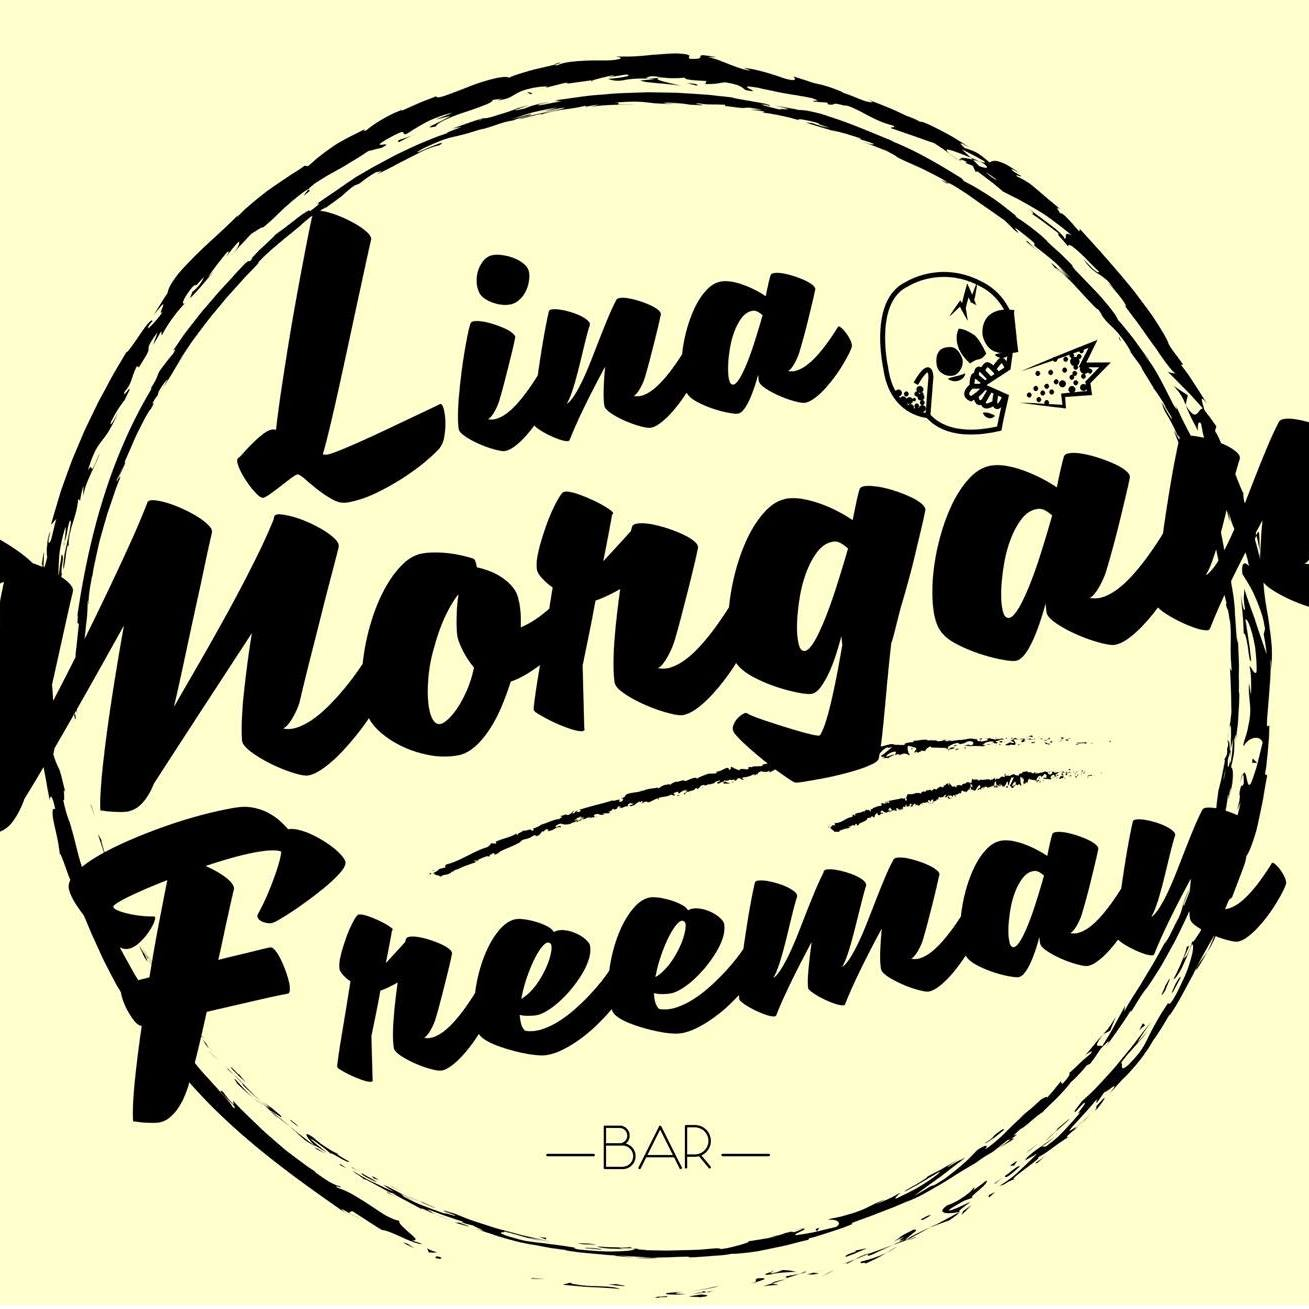 lina morgan freeman bar palencia